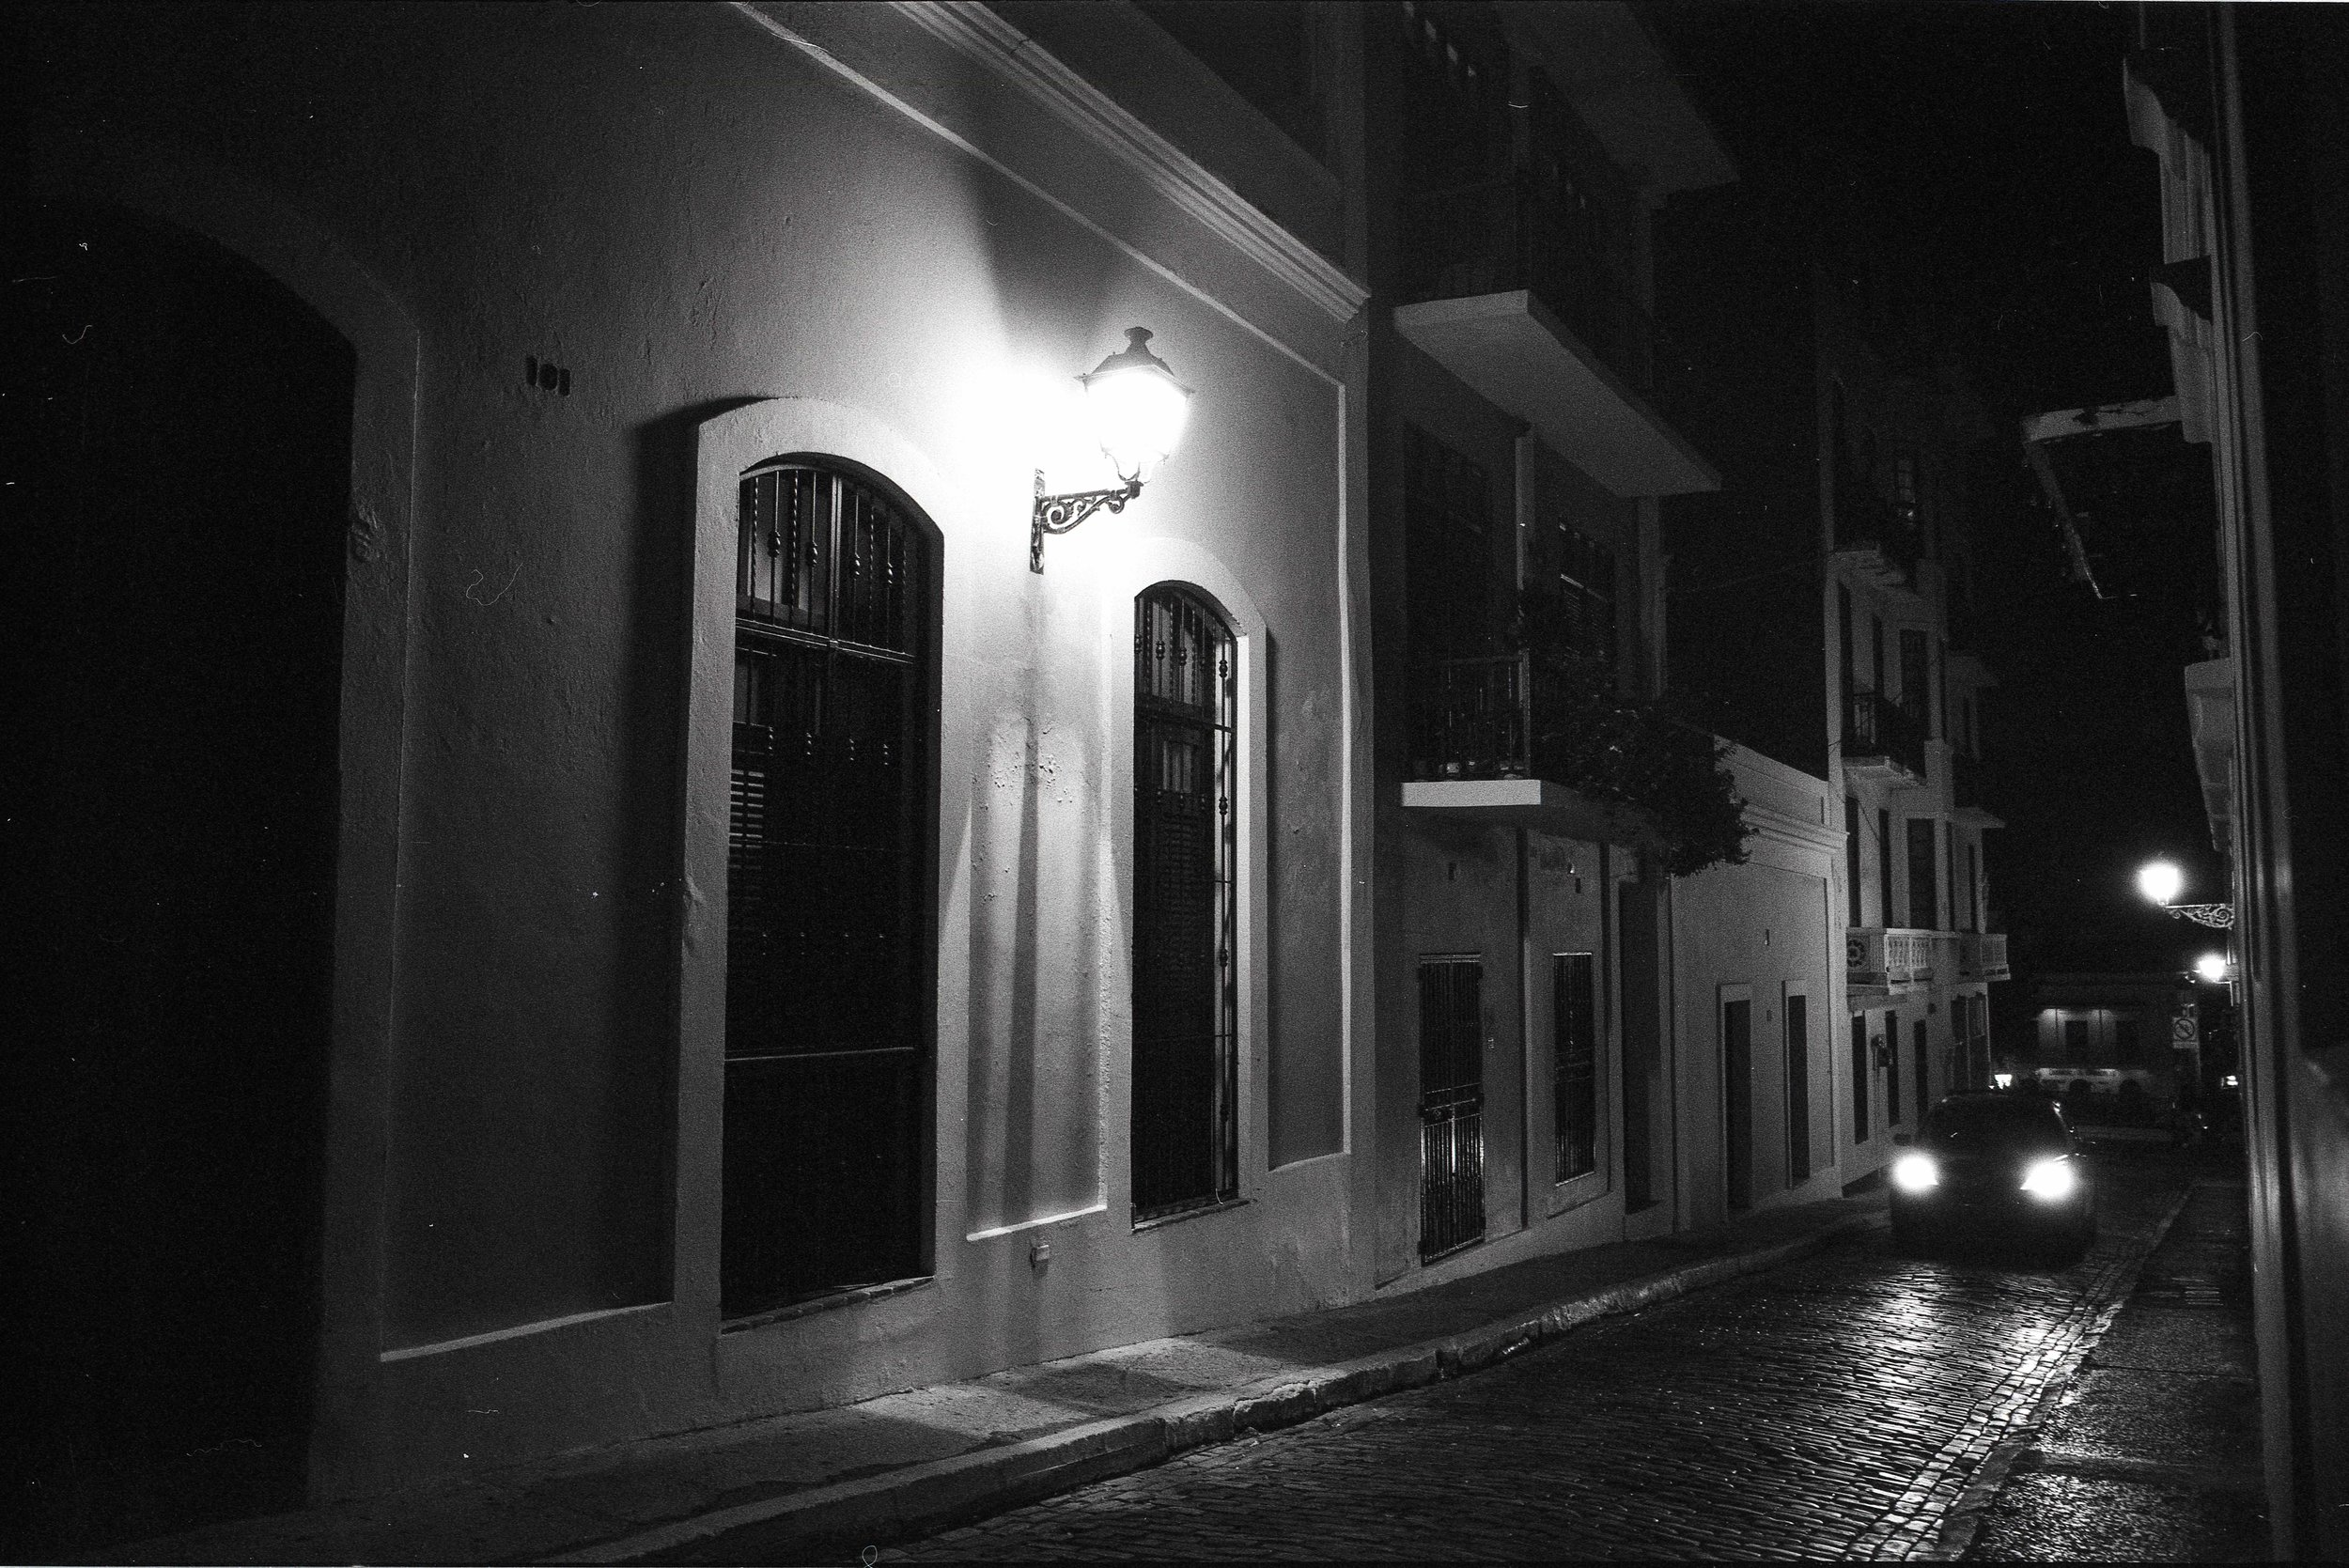 One of the most difficult captures I've ever successfully made without a tripod, A night time view of a street in Old San Juan, Puerto Rico -  Shot on Ilford Delta 3200